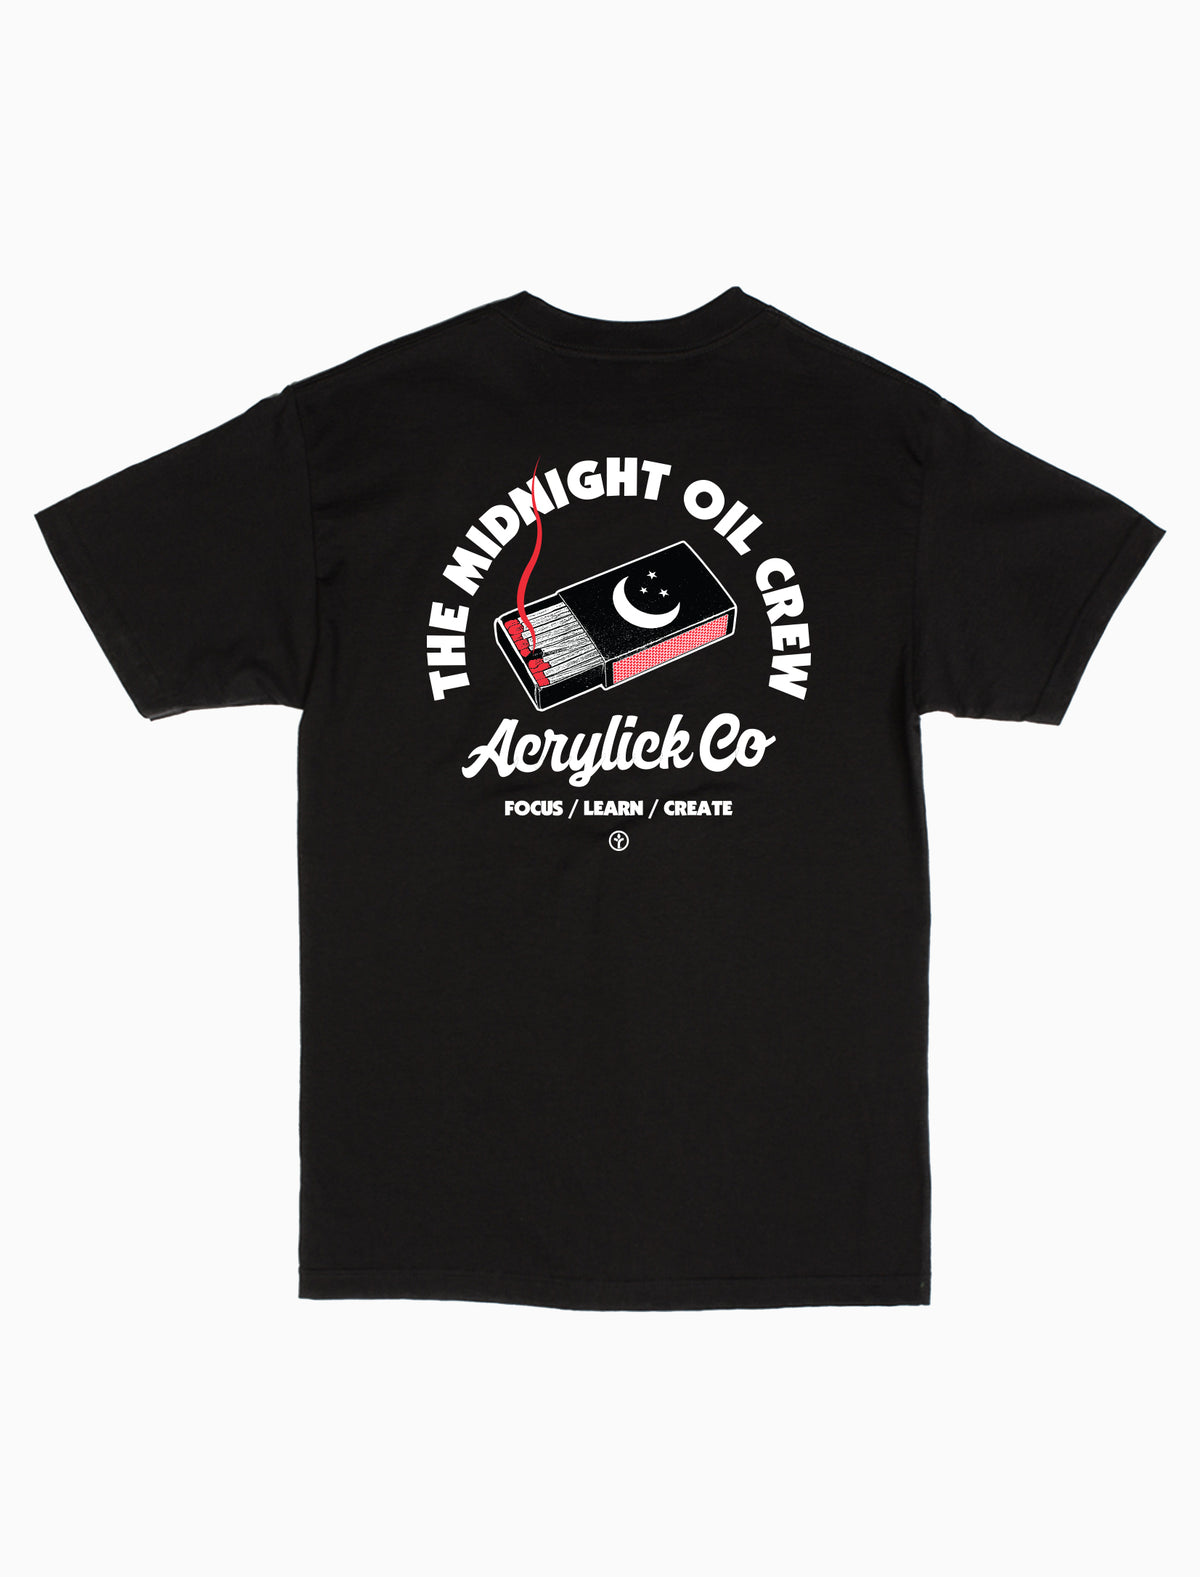 Midnighters Tee